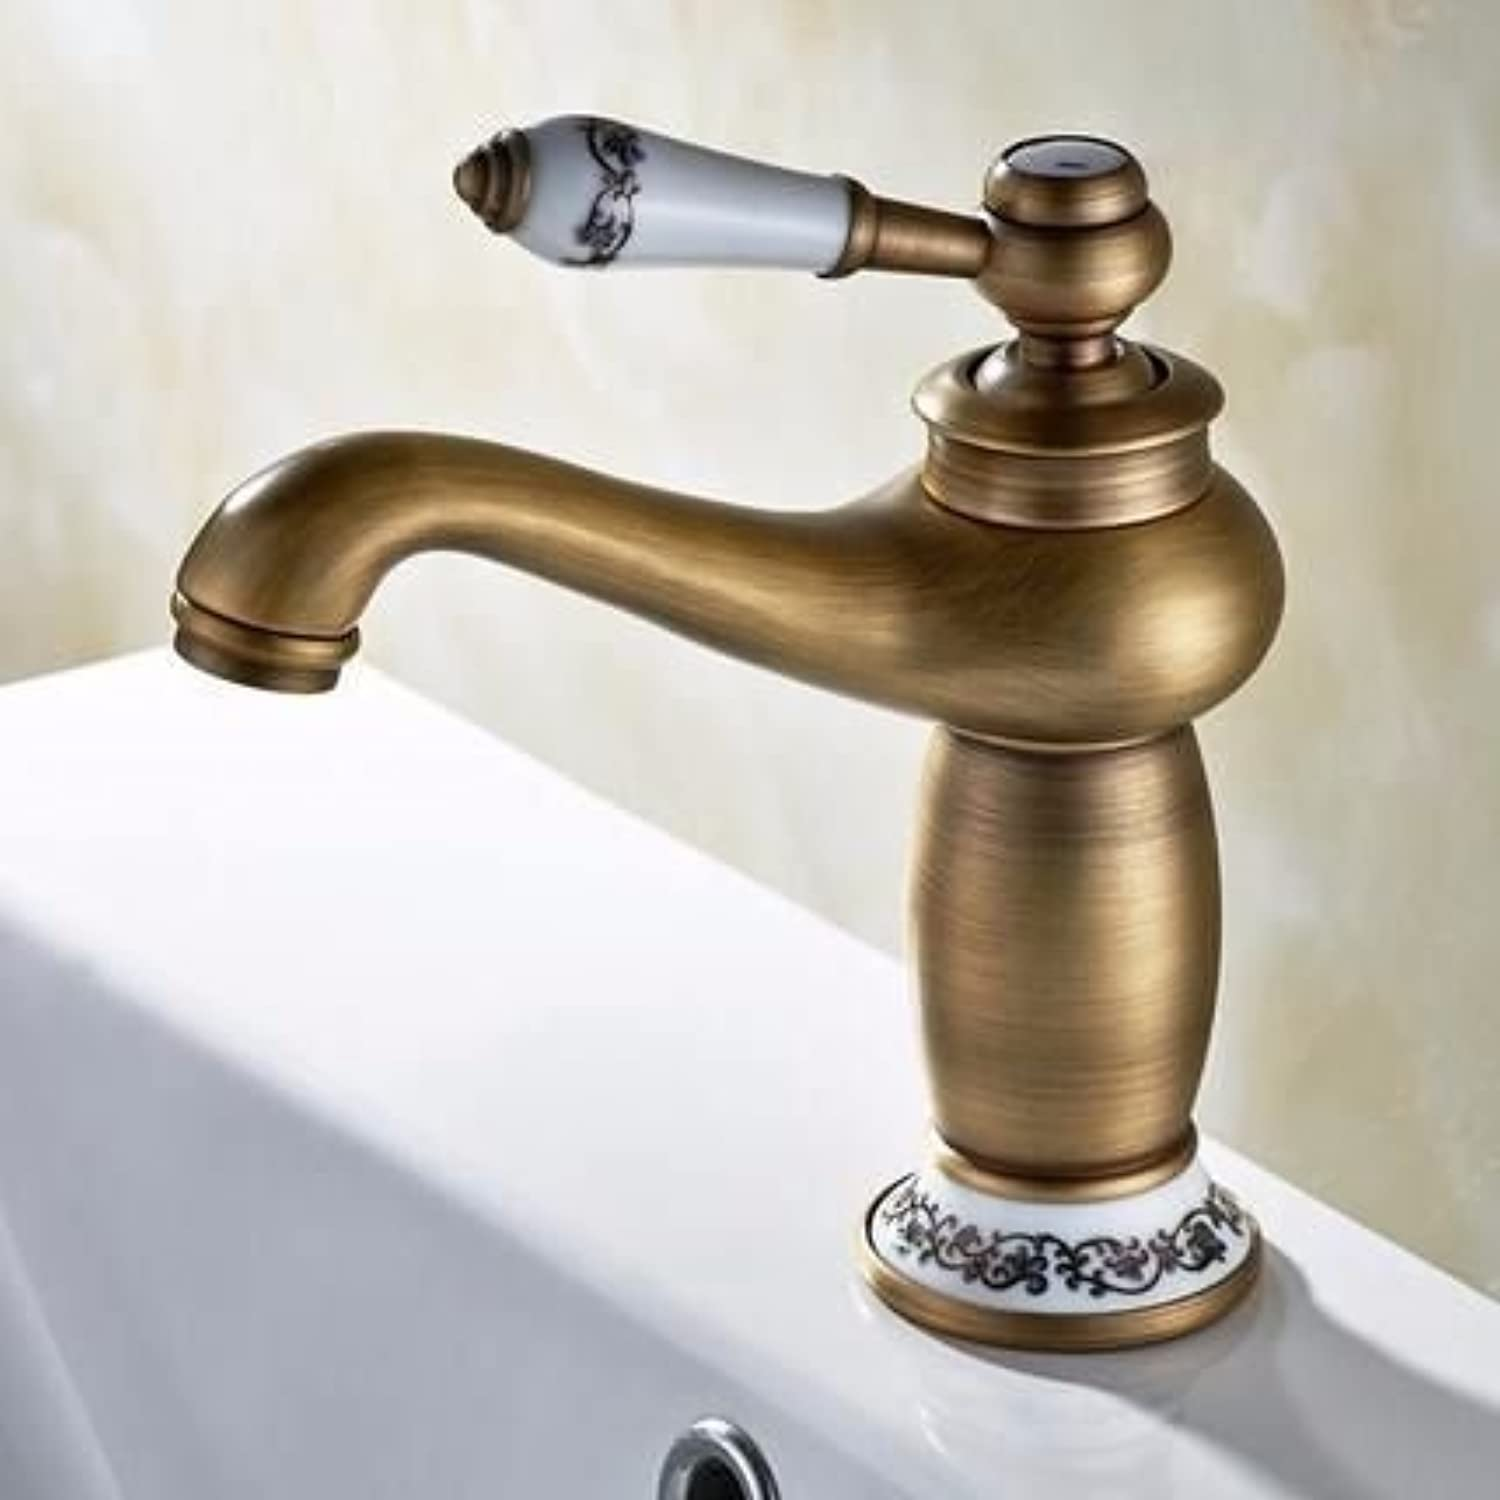 ETERNAL QUALITY Bathroom Sink Basin Tap Brass Mixer Tap Washroom Mixer Faucet Basin faucet single hole, single-copper hot and cold-water Mixer blender coordinates Kitchen